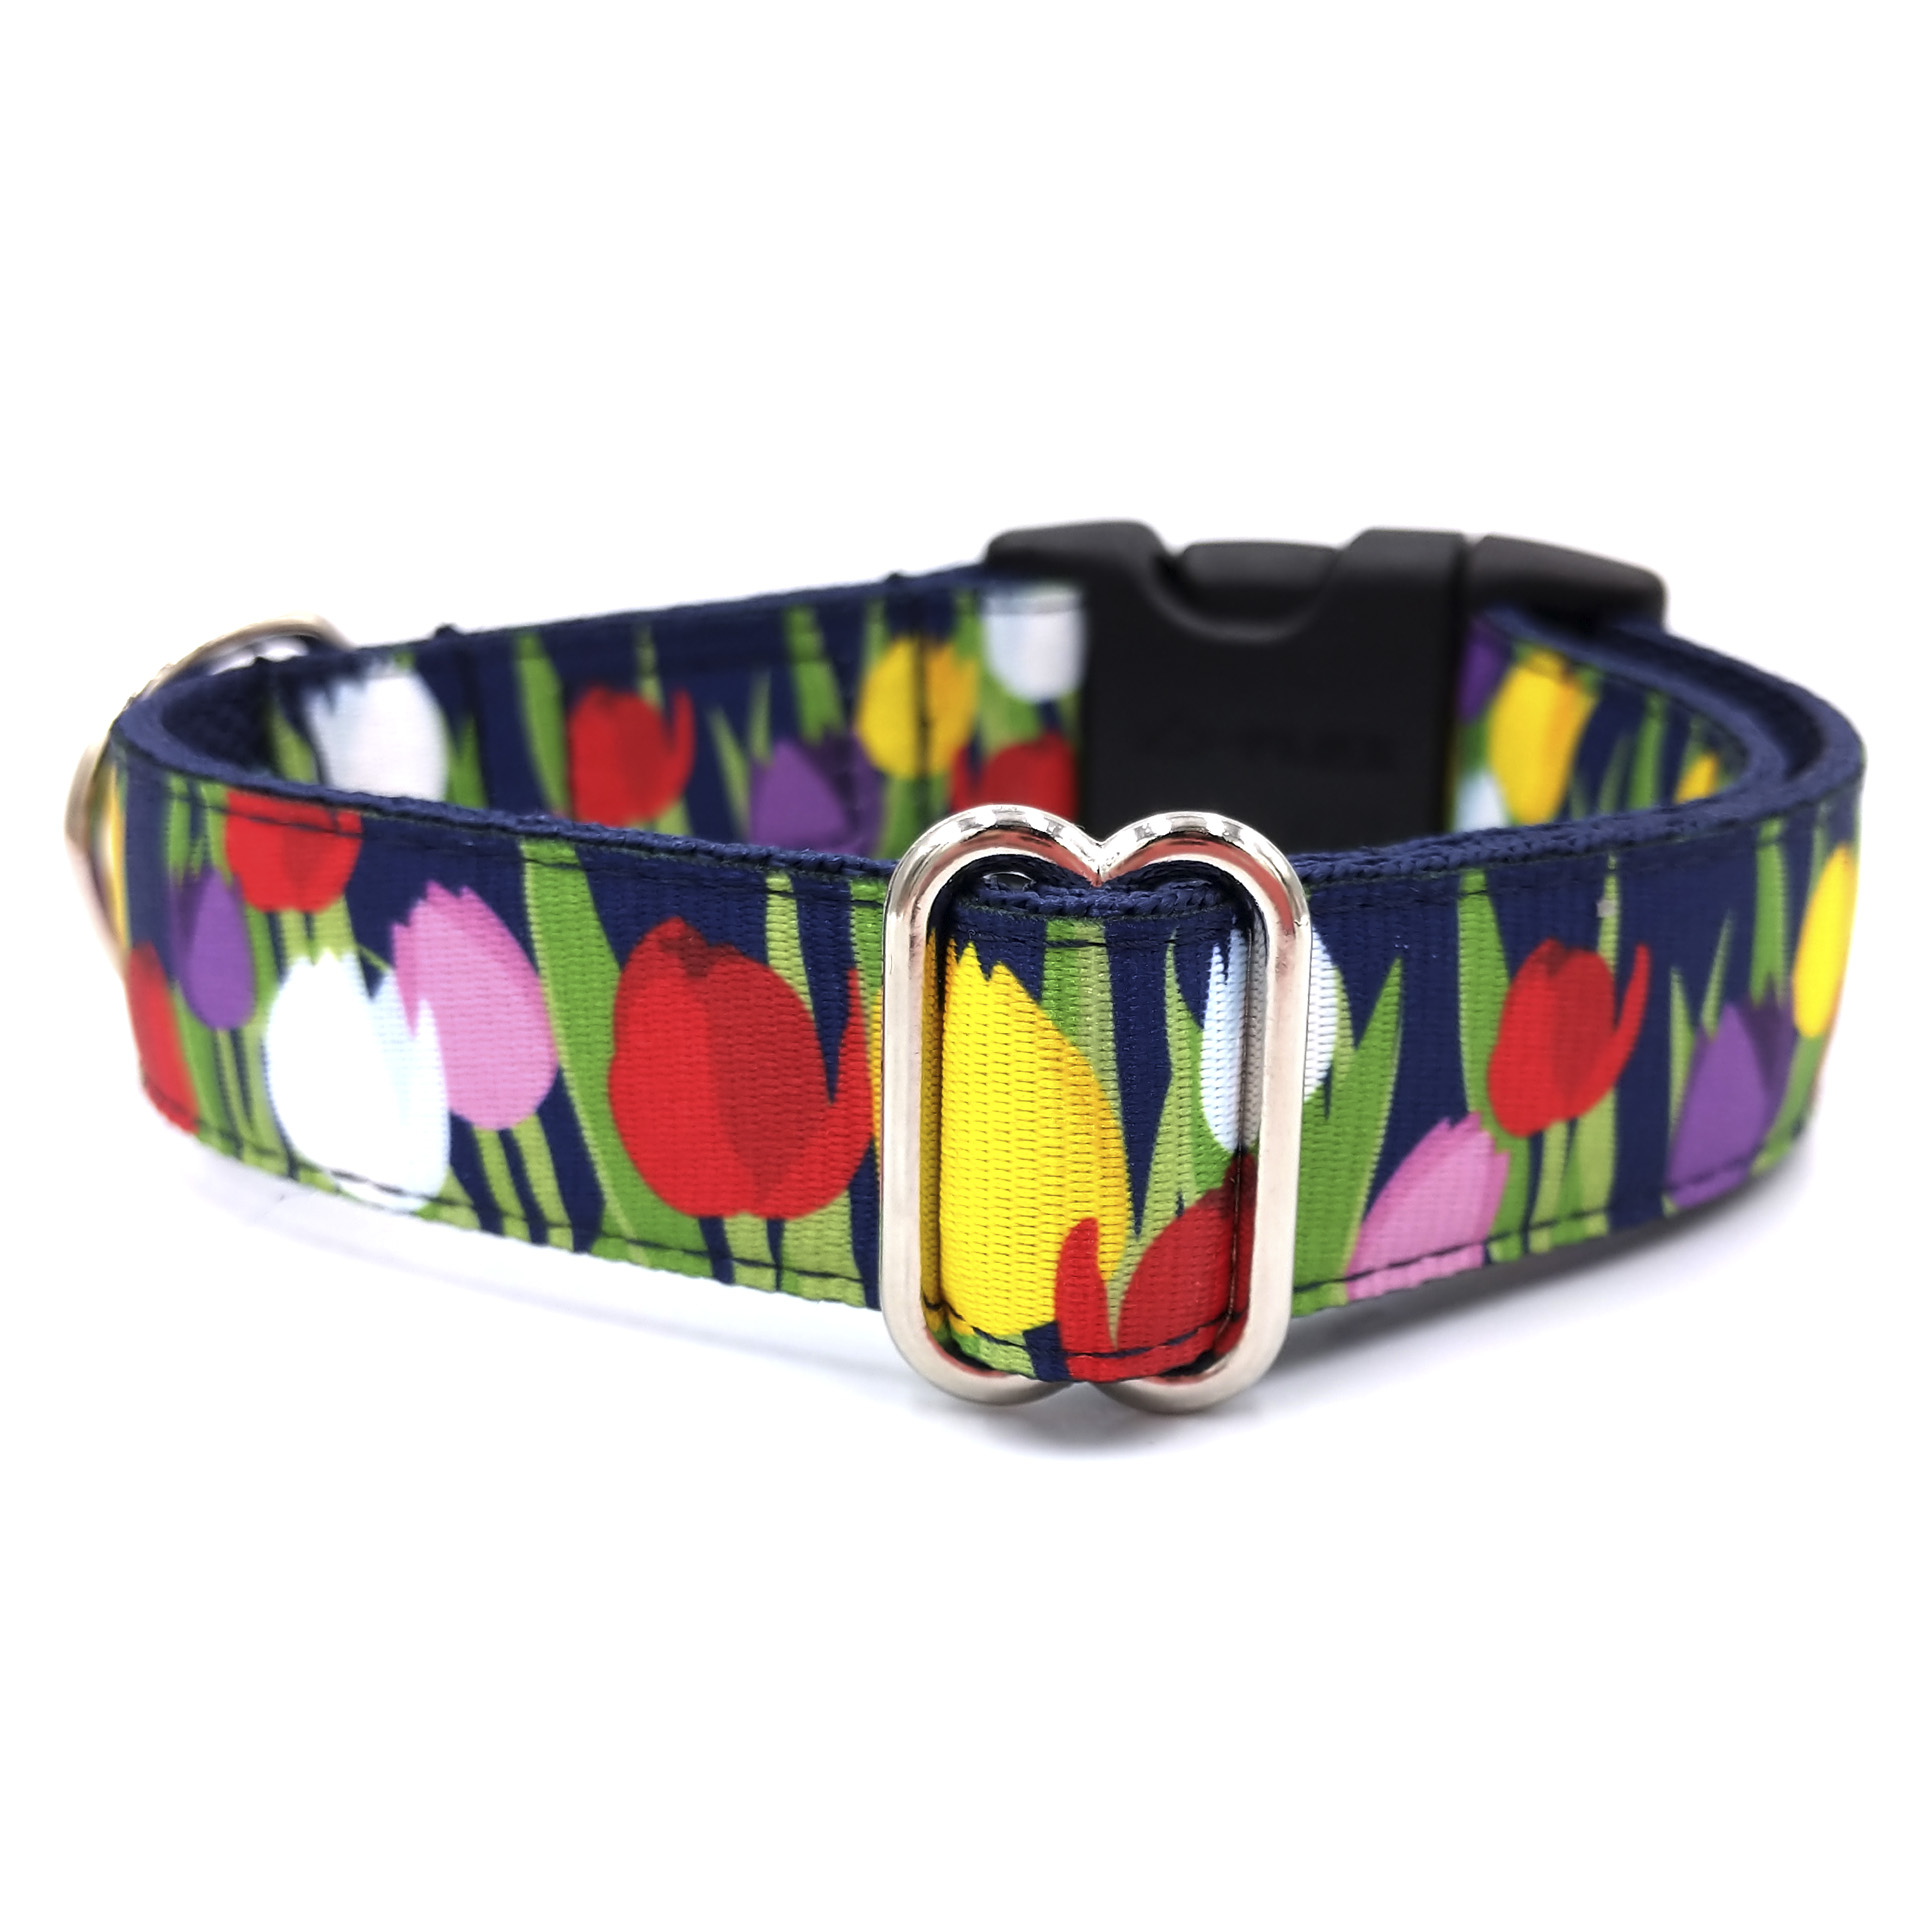 Tulip dog collar